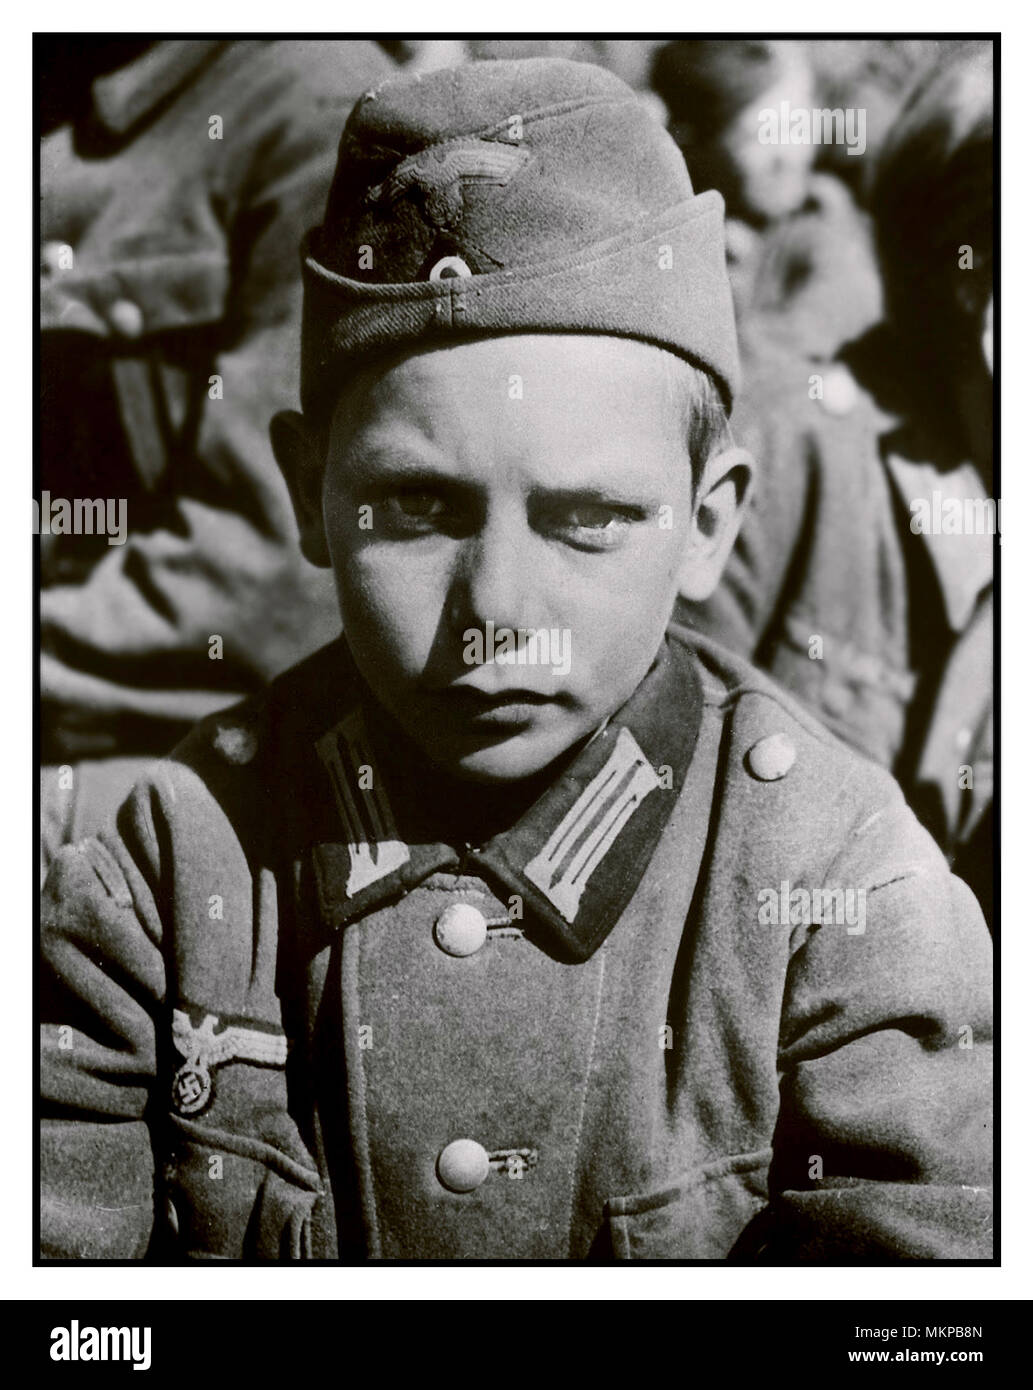 1945 WW2 Vintage Image 13-year-old POW from a Hitler Youth unit captured by the US Army in Martinszell-Waltenhofen, May 1945. Jugend troops with boys as young as 12 were widely used in the battle of Berlin as cannon fodder to buy a few hours to Nazi criminals busily fleeing to Switzerland, Argentina, Chile and Uruguay. The boys were dying in the last days and hours of war as obedient, loyal pawns when the fate of the Nazi state was sealed, - Stock Image